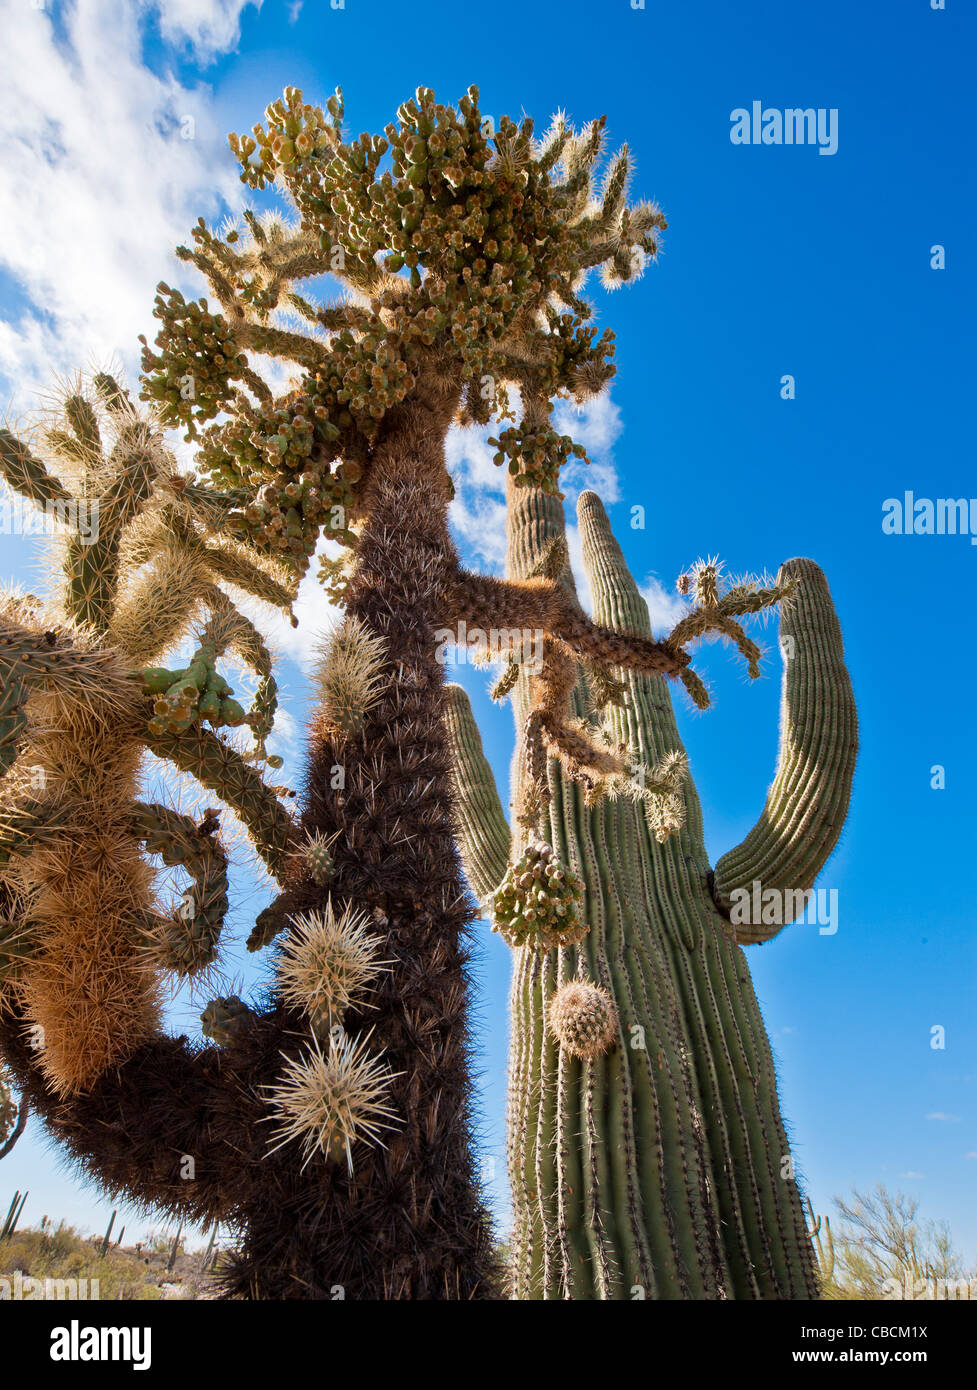 A giant Fruit-Chain Cholla cactus along side huge Saguaros in the Sonoran desert.  Florence, Arizona. - Stock Image